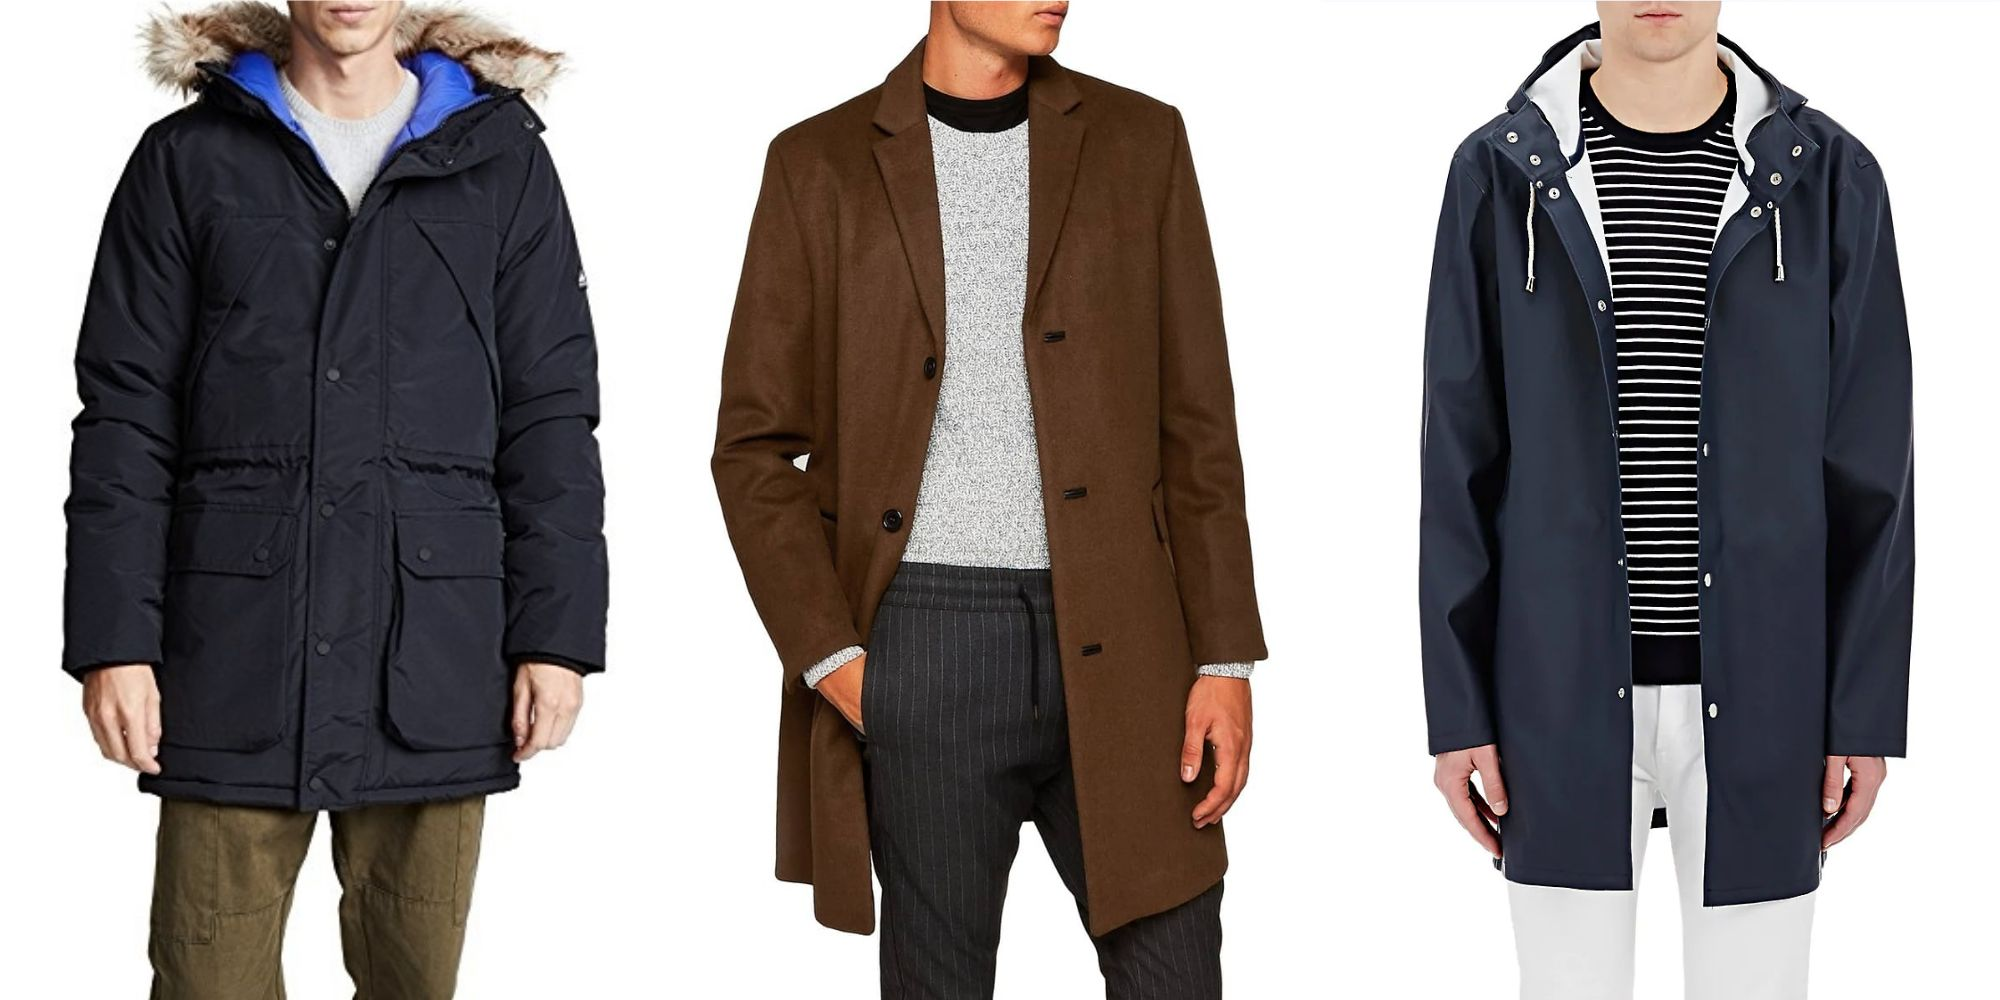 10 Of The Best Men's Heavy-Duty Coats pictures